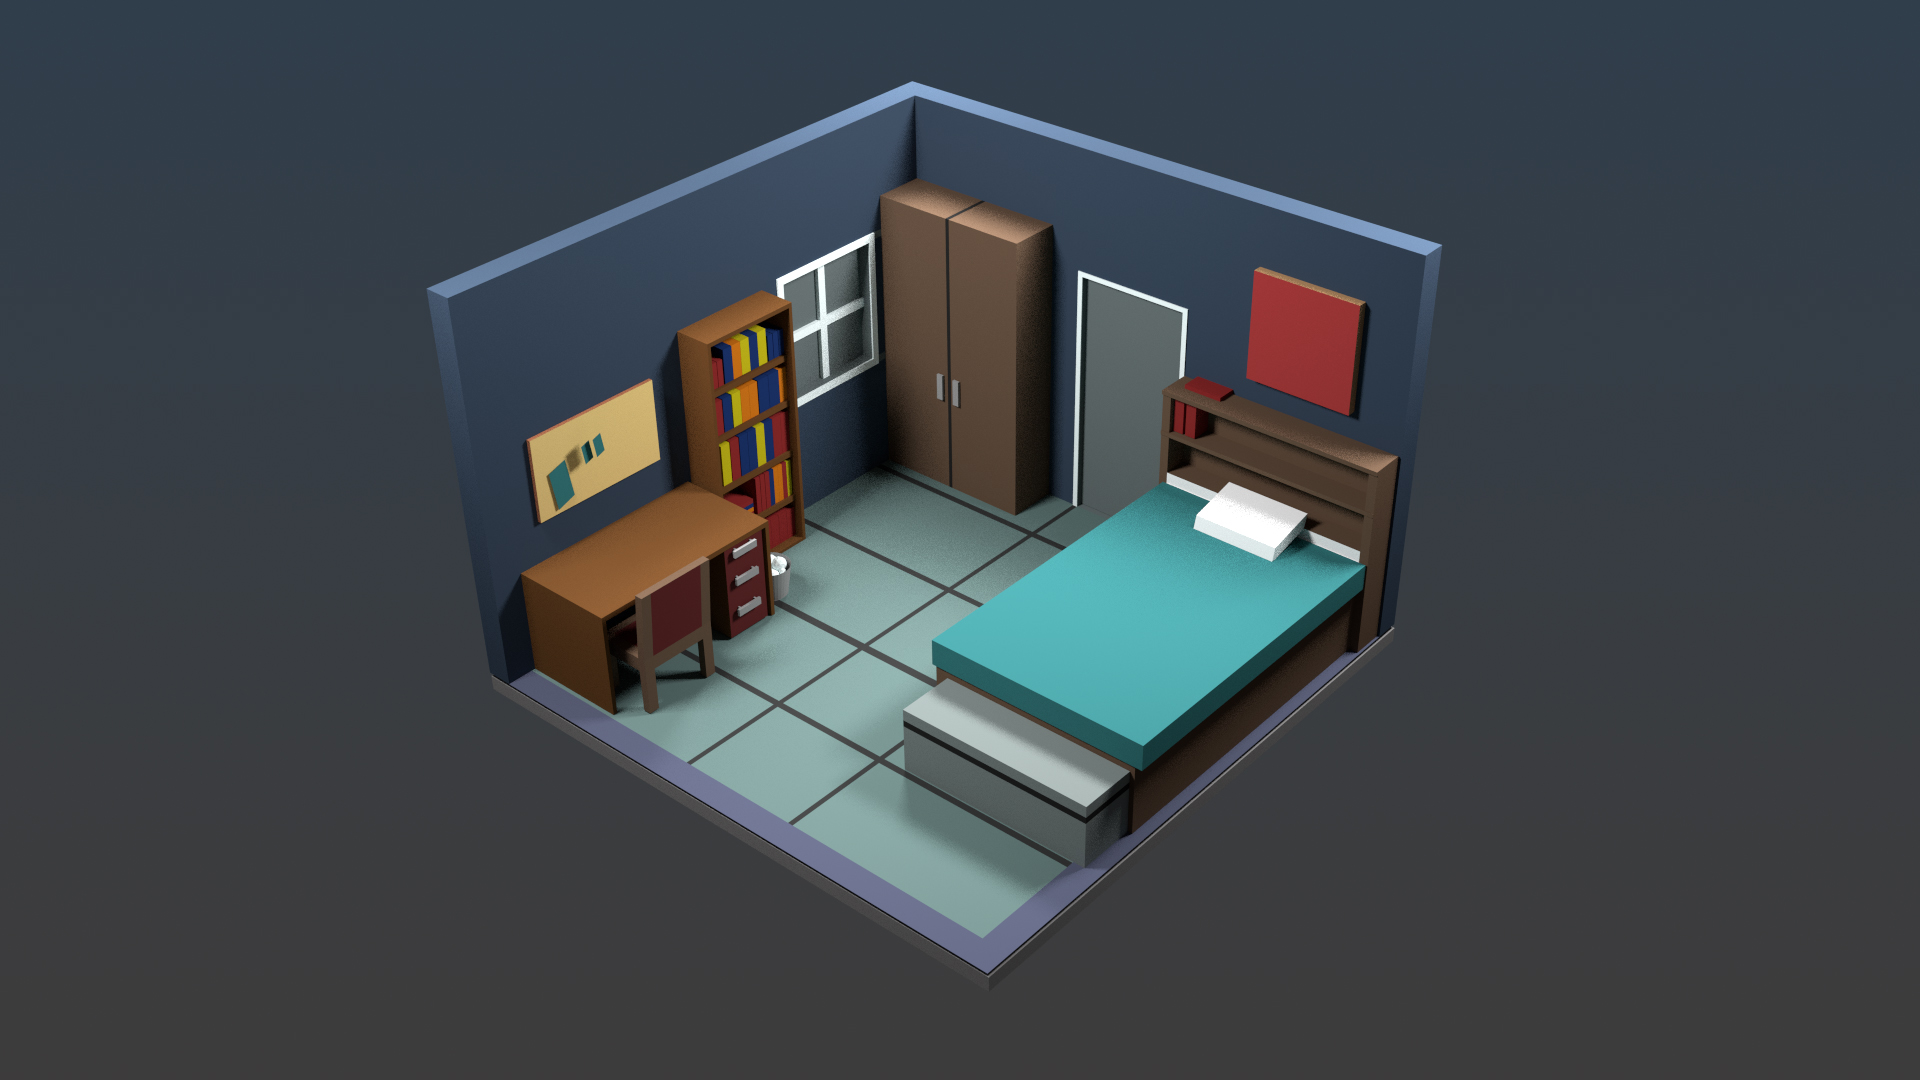 Olde tinkerer studio dorm room 3d model for Room modeling software